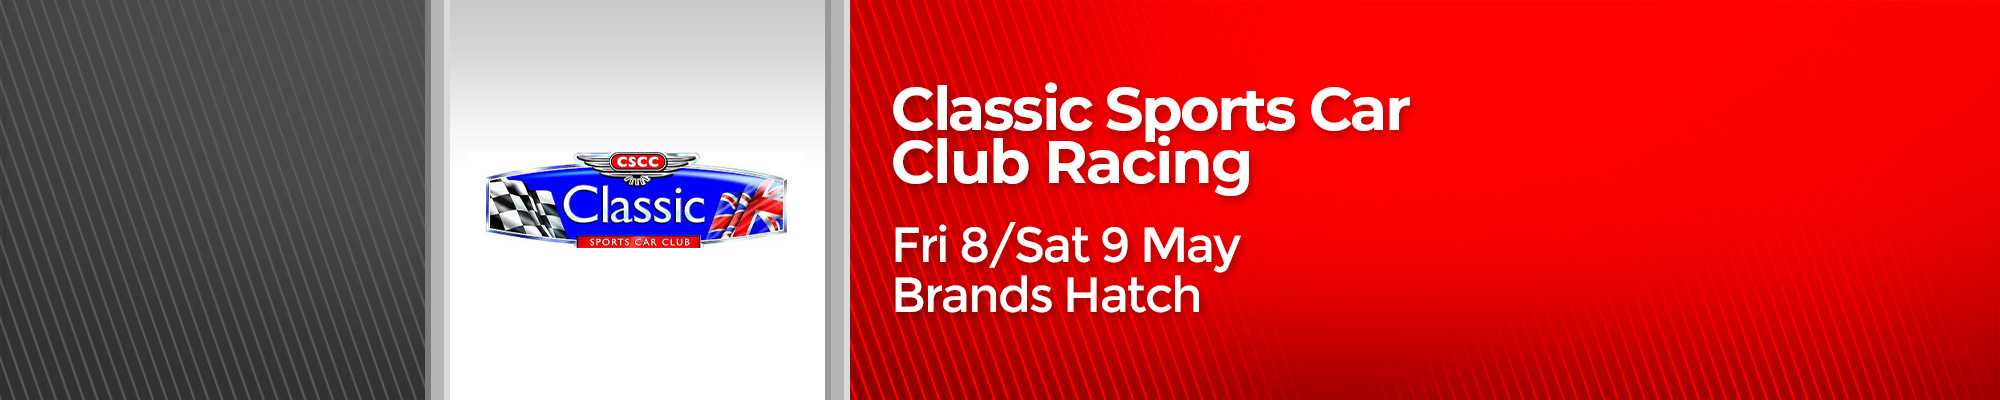 Classic Sports Car Club Racing - POSTPONED